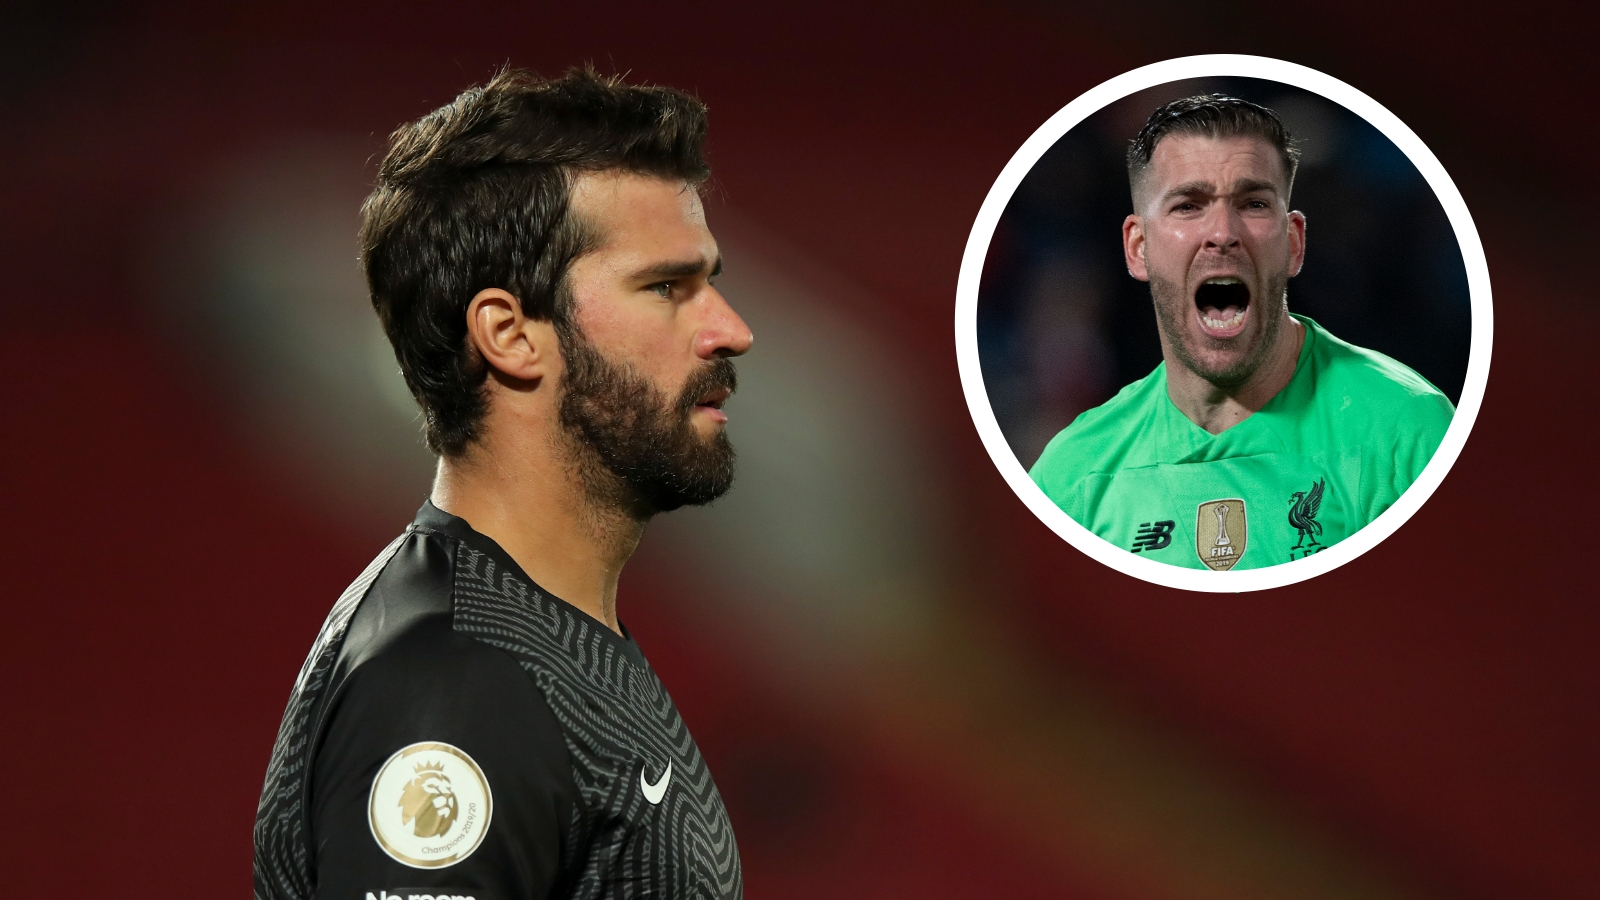 Adrian confident he can help to make Alisson better and expects to stay at Liverpool